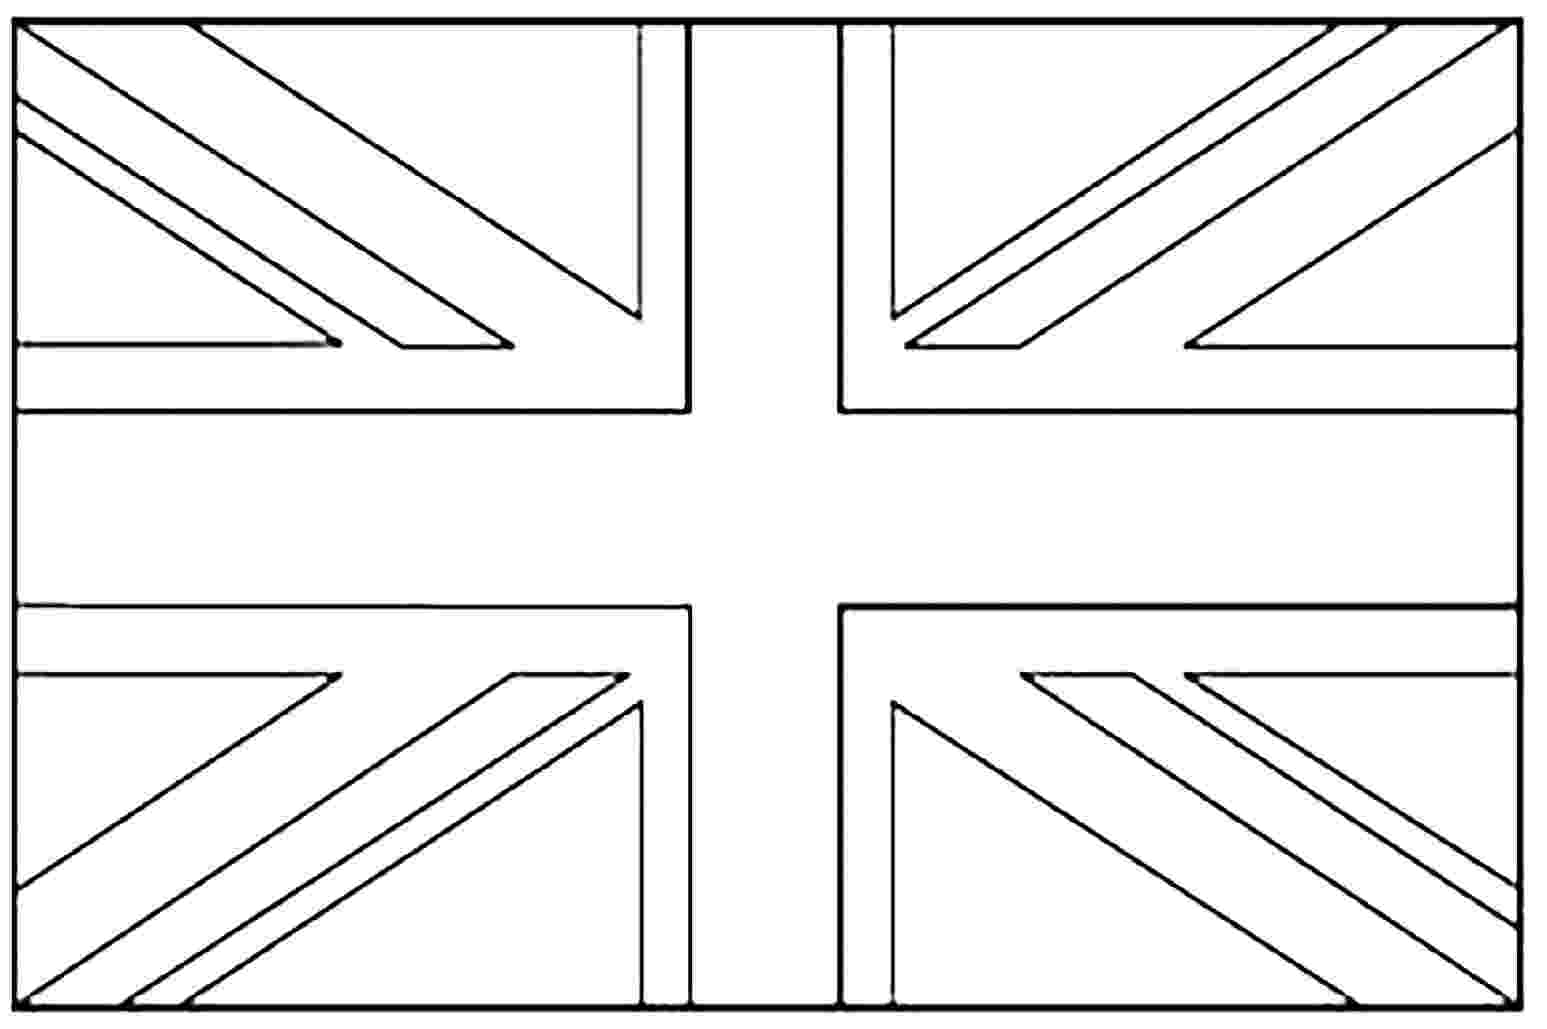 united kingdom flag to colour page 80 handistorycom free coloring pages for kids united colour to kingdom flag